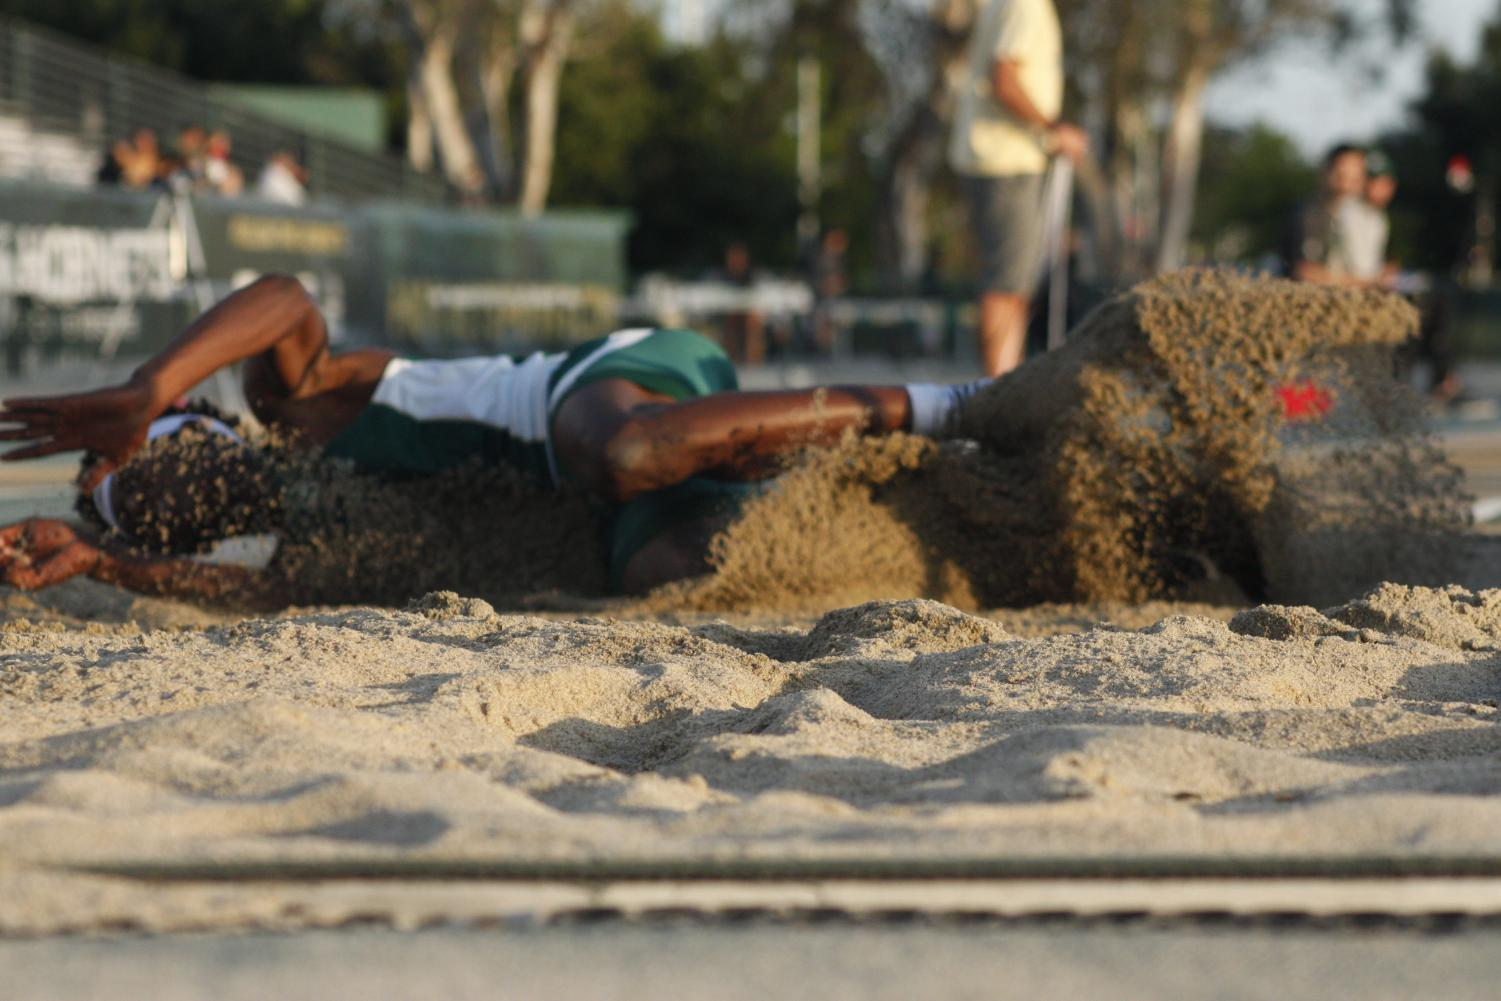 Sacramento State sophomore Jah Strange lands in the triple jump pit before finishing in second place in the Causeway Classic Duel against UC Davis at Hornet Stadium on Friday, April 28, 2018. Strange also earned a personal best of 24-11.75 for first place in the long jump.